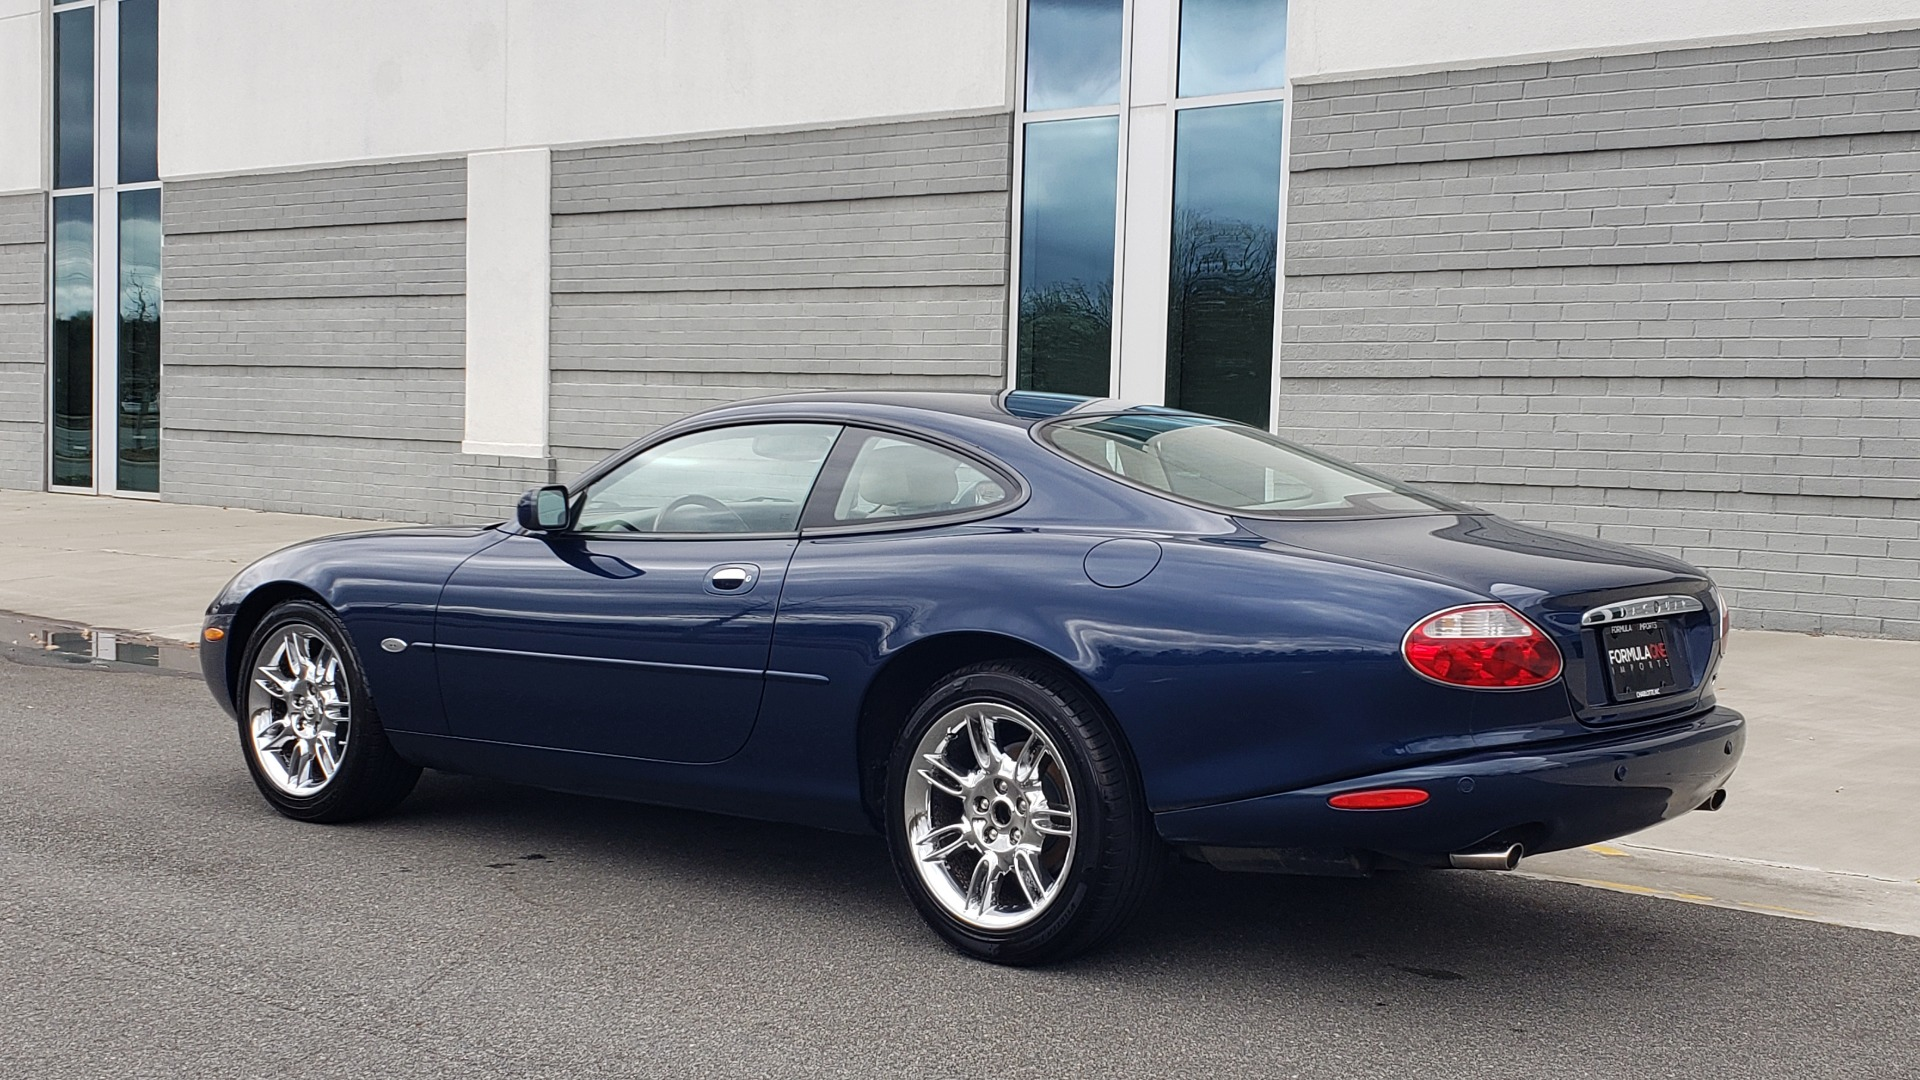 Used 2002 Jaguar XK8 COUPE / 4.0L V8 / 5-SPD AUTO / ALPINE SOUND / 18IN CHROME WHEELS for sale $16,450 at Formula Imports in Charlotte NC 28227 6